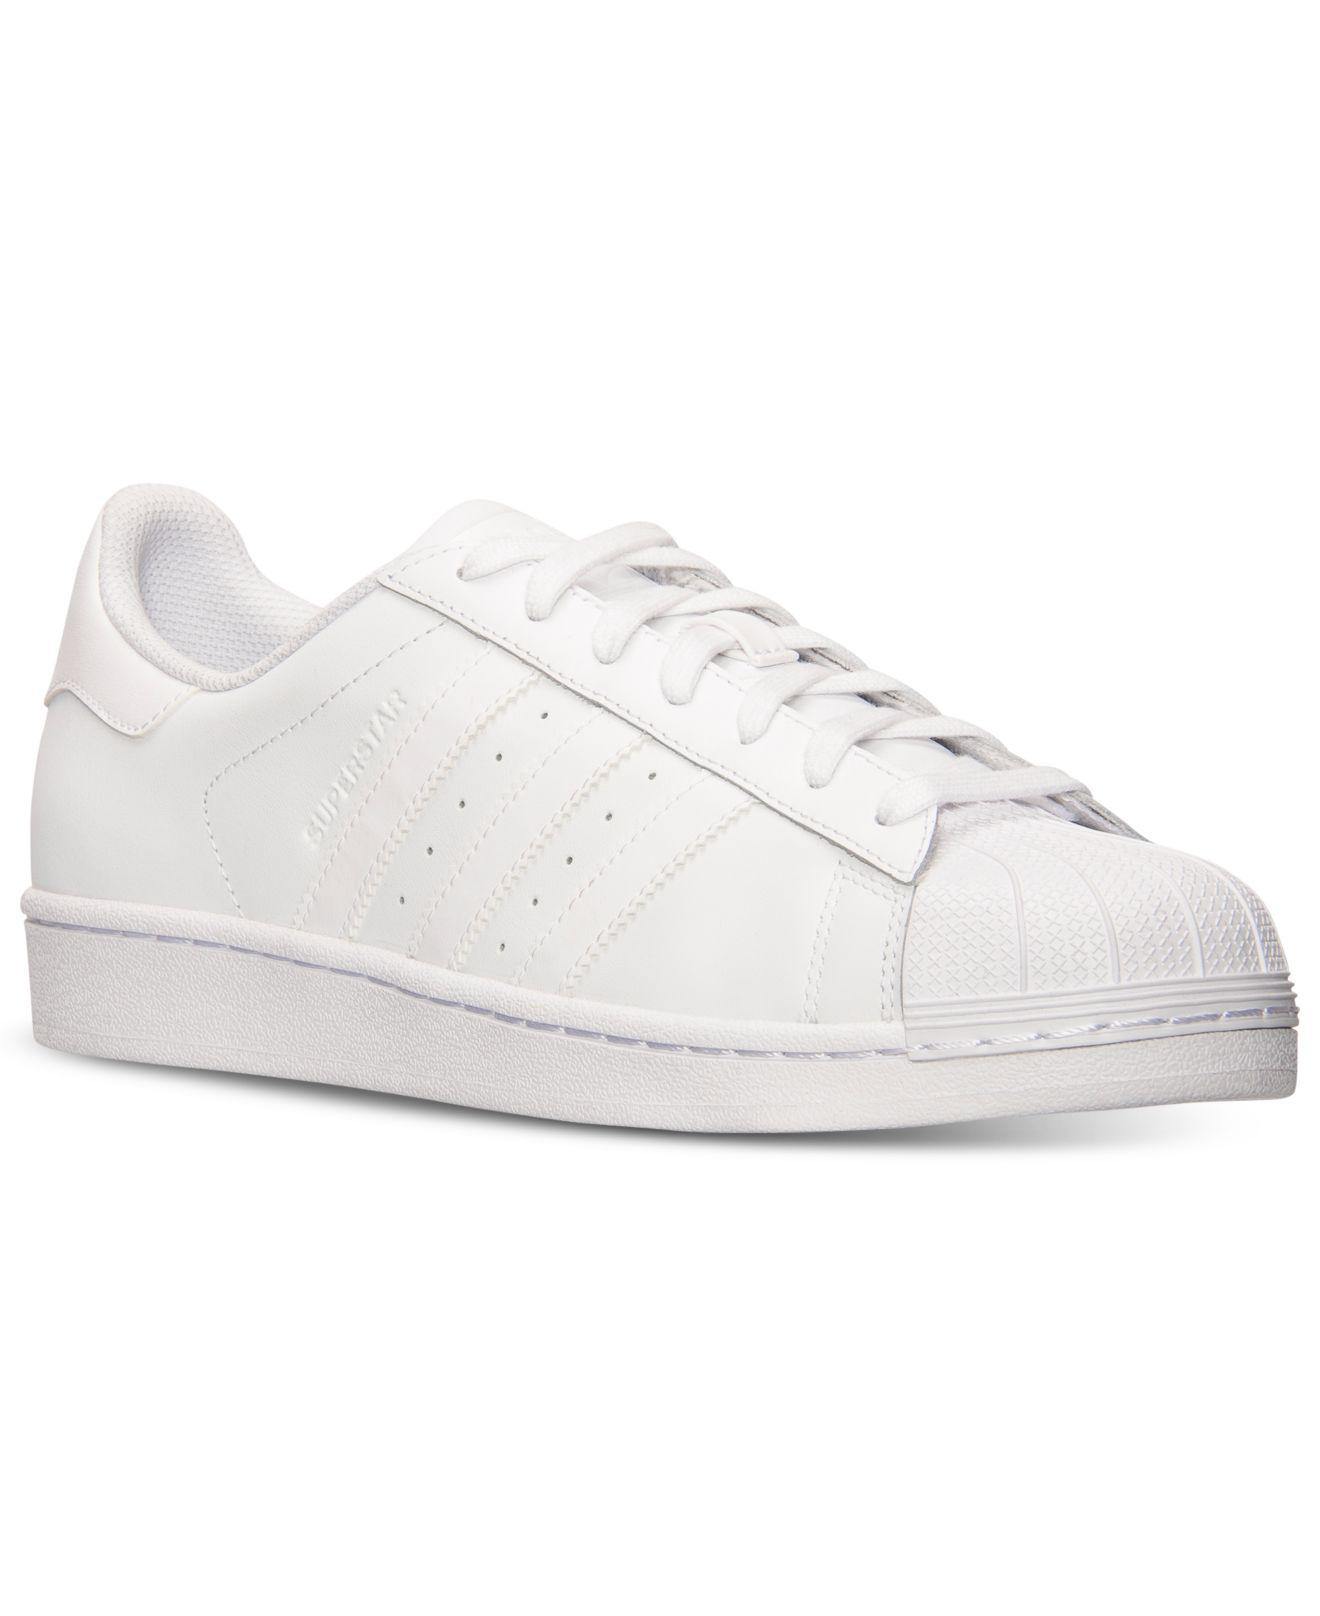 56fdc9f58 Lyst - adidas Men s Superstar Casual Sneakers From Finish Line in ...